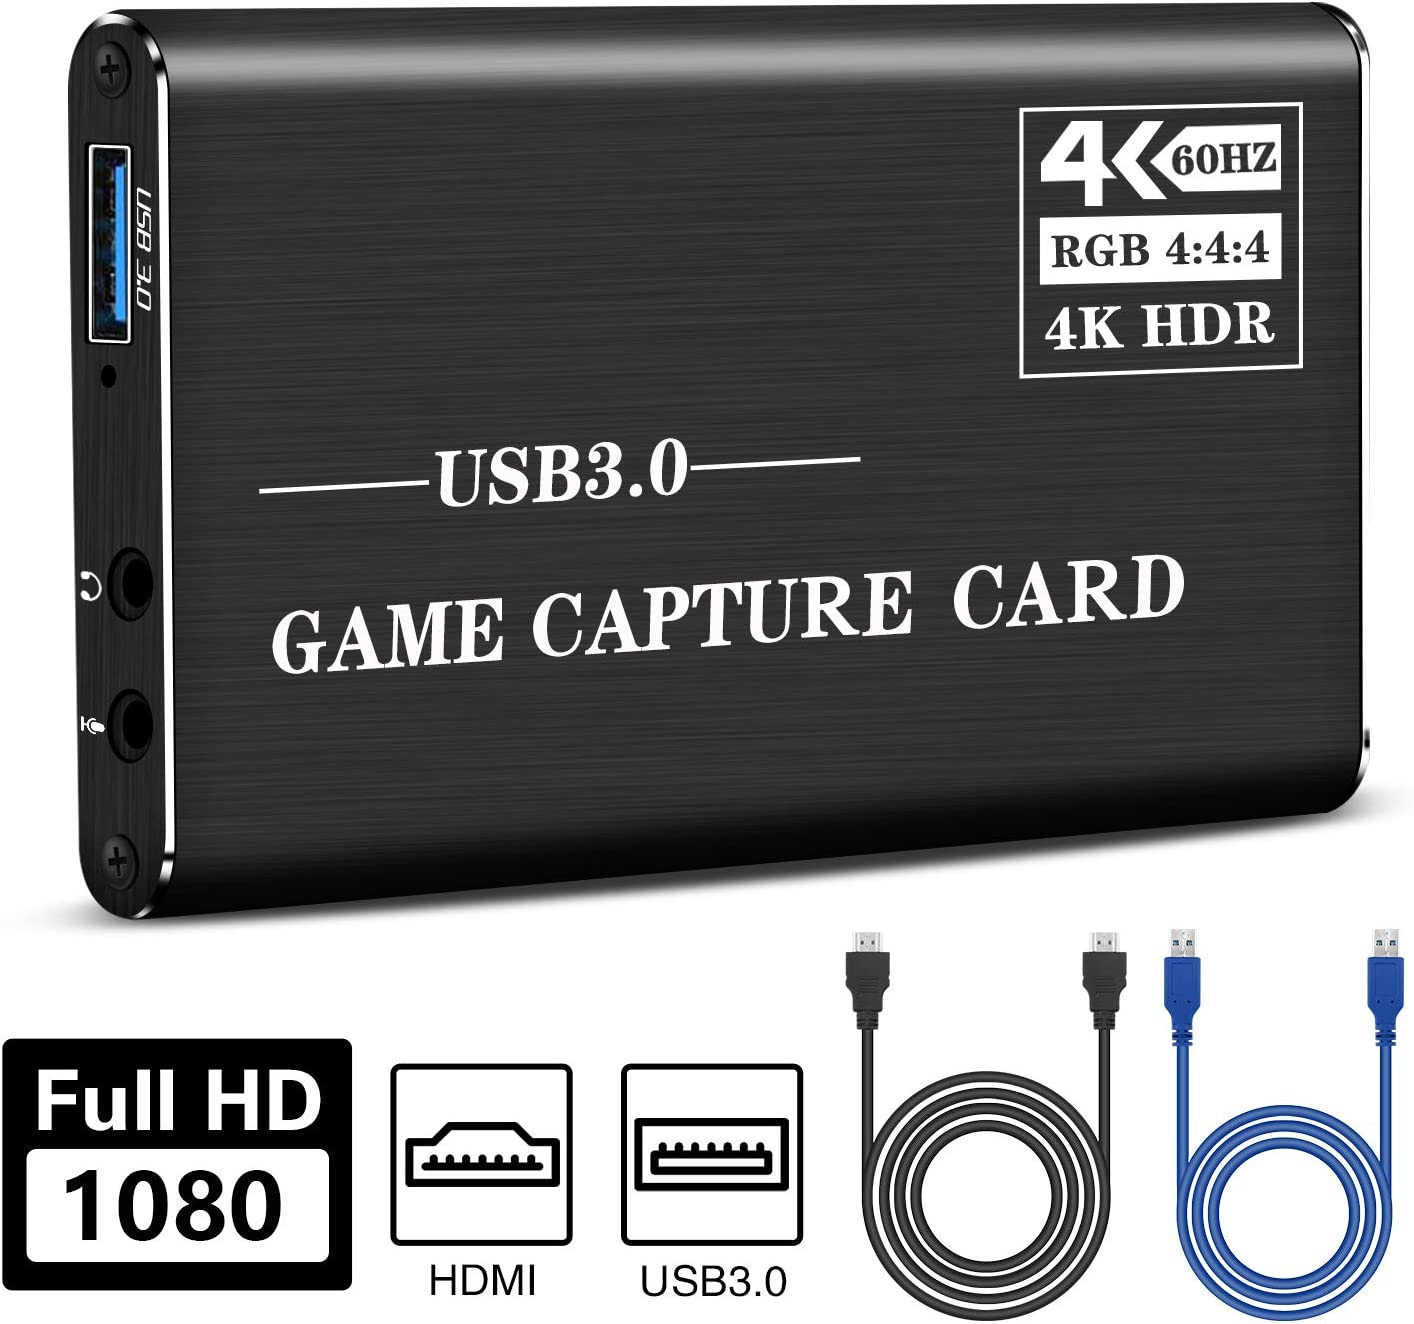 MRLI HD Video Capture Card, USB 3.0 HDMI Audio Capture Card, 4K 60FPS Game Capture Device Game Streaming Live Video Recorder for Xbox One, PS4, Wii, Nintendo Switch